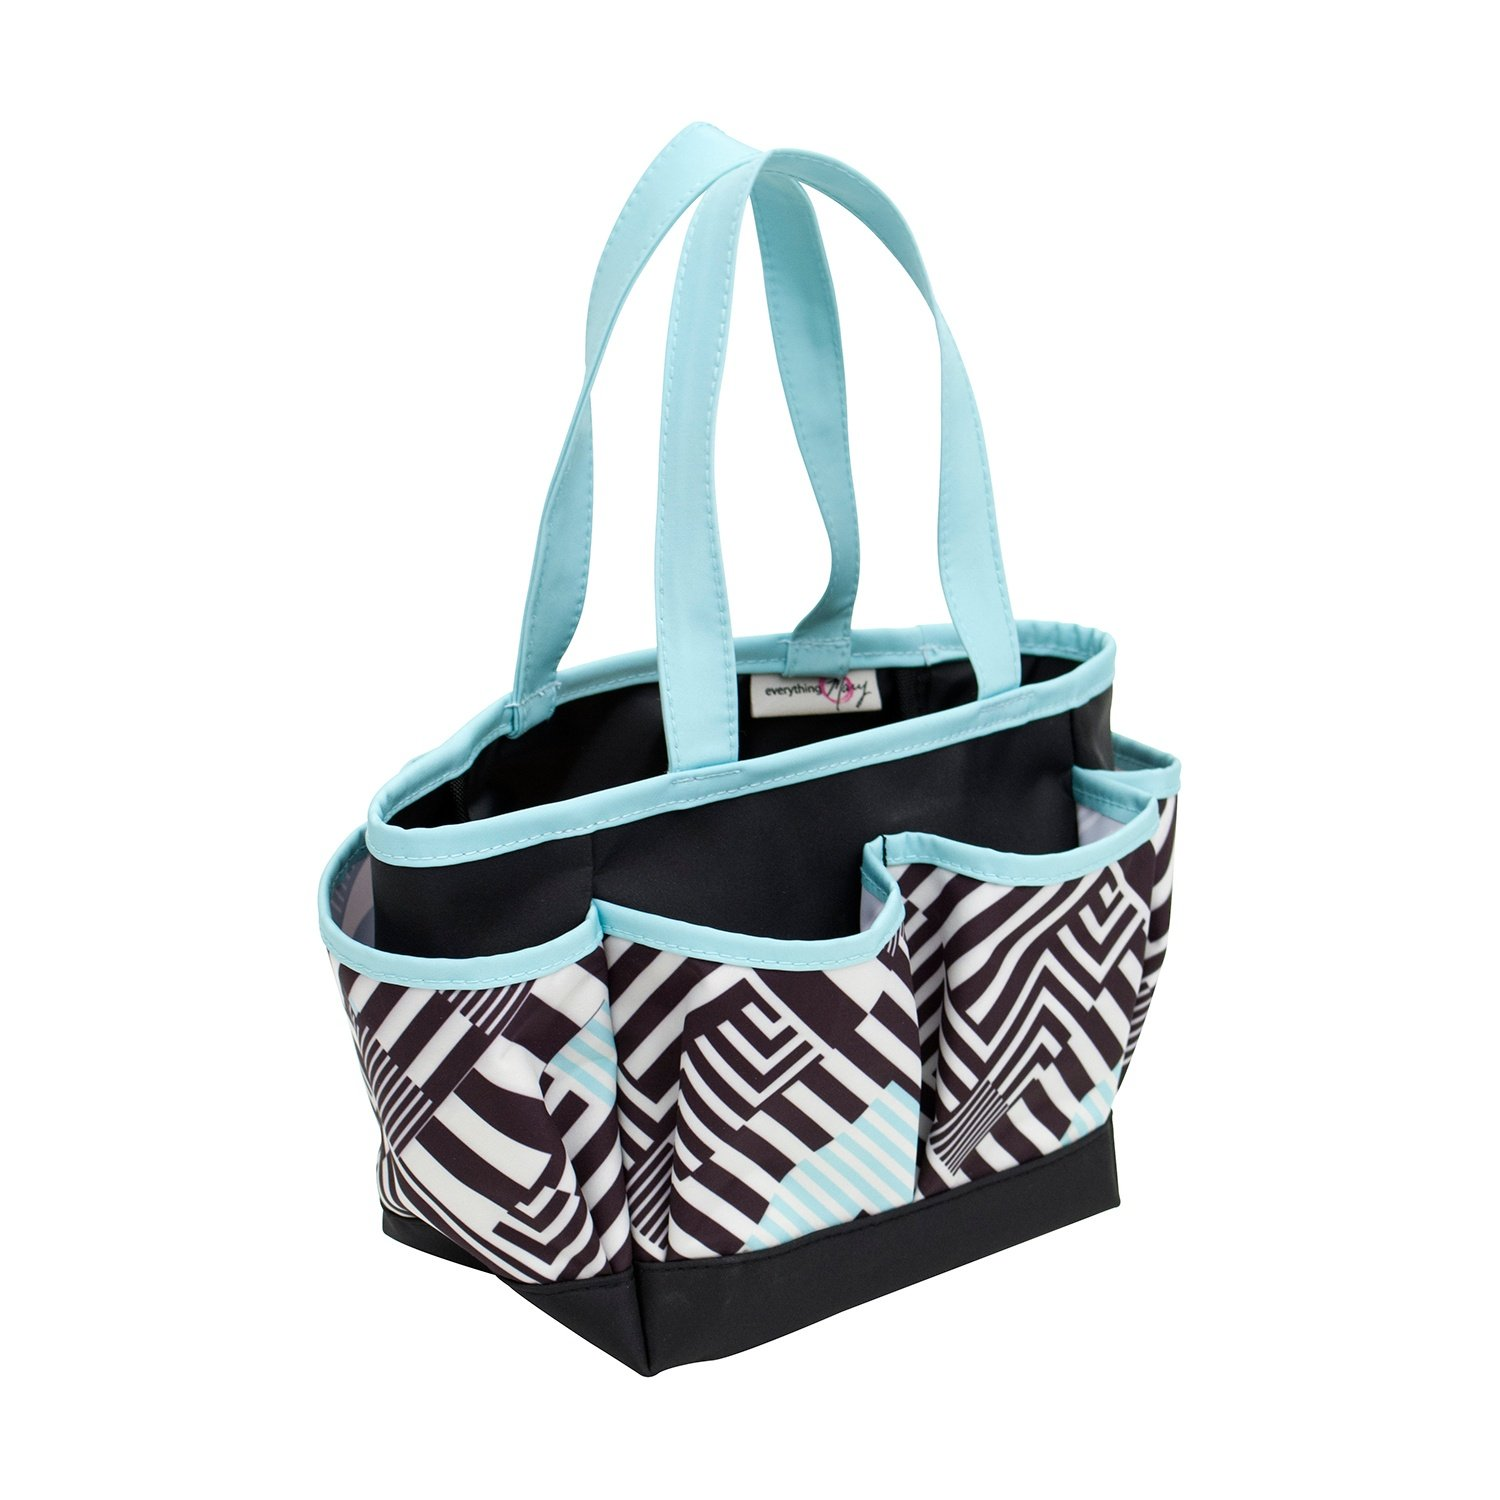 b8bb7951baca Amazon.com  Everything Mary Crafters Storage Tote